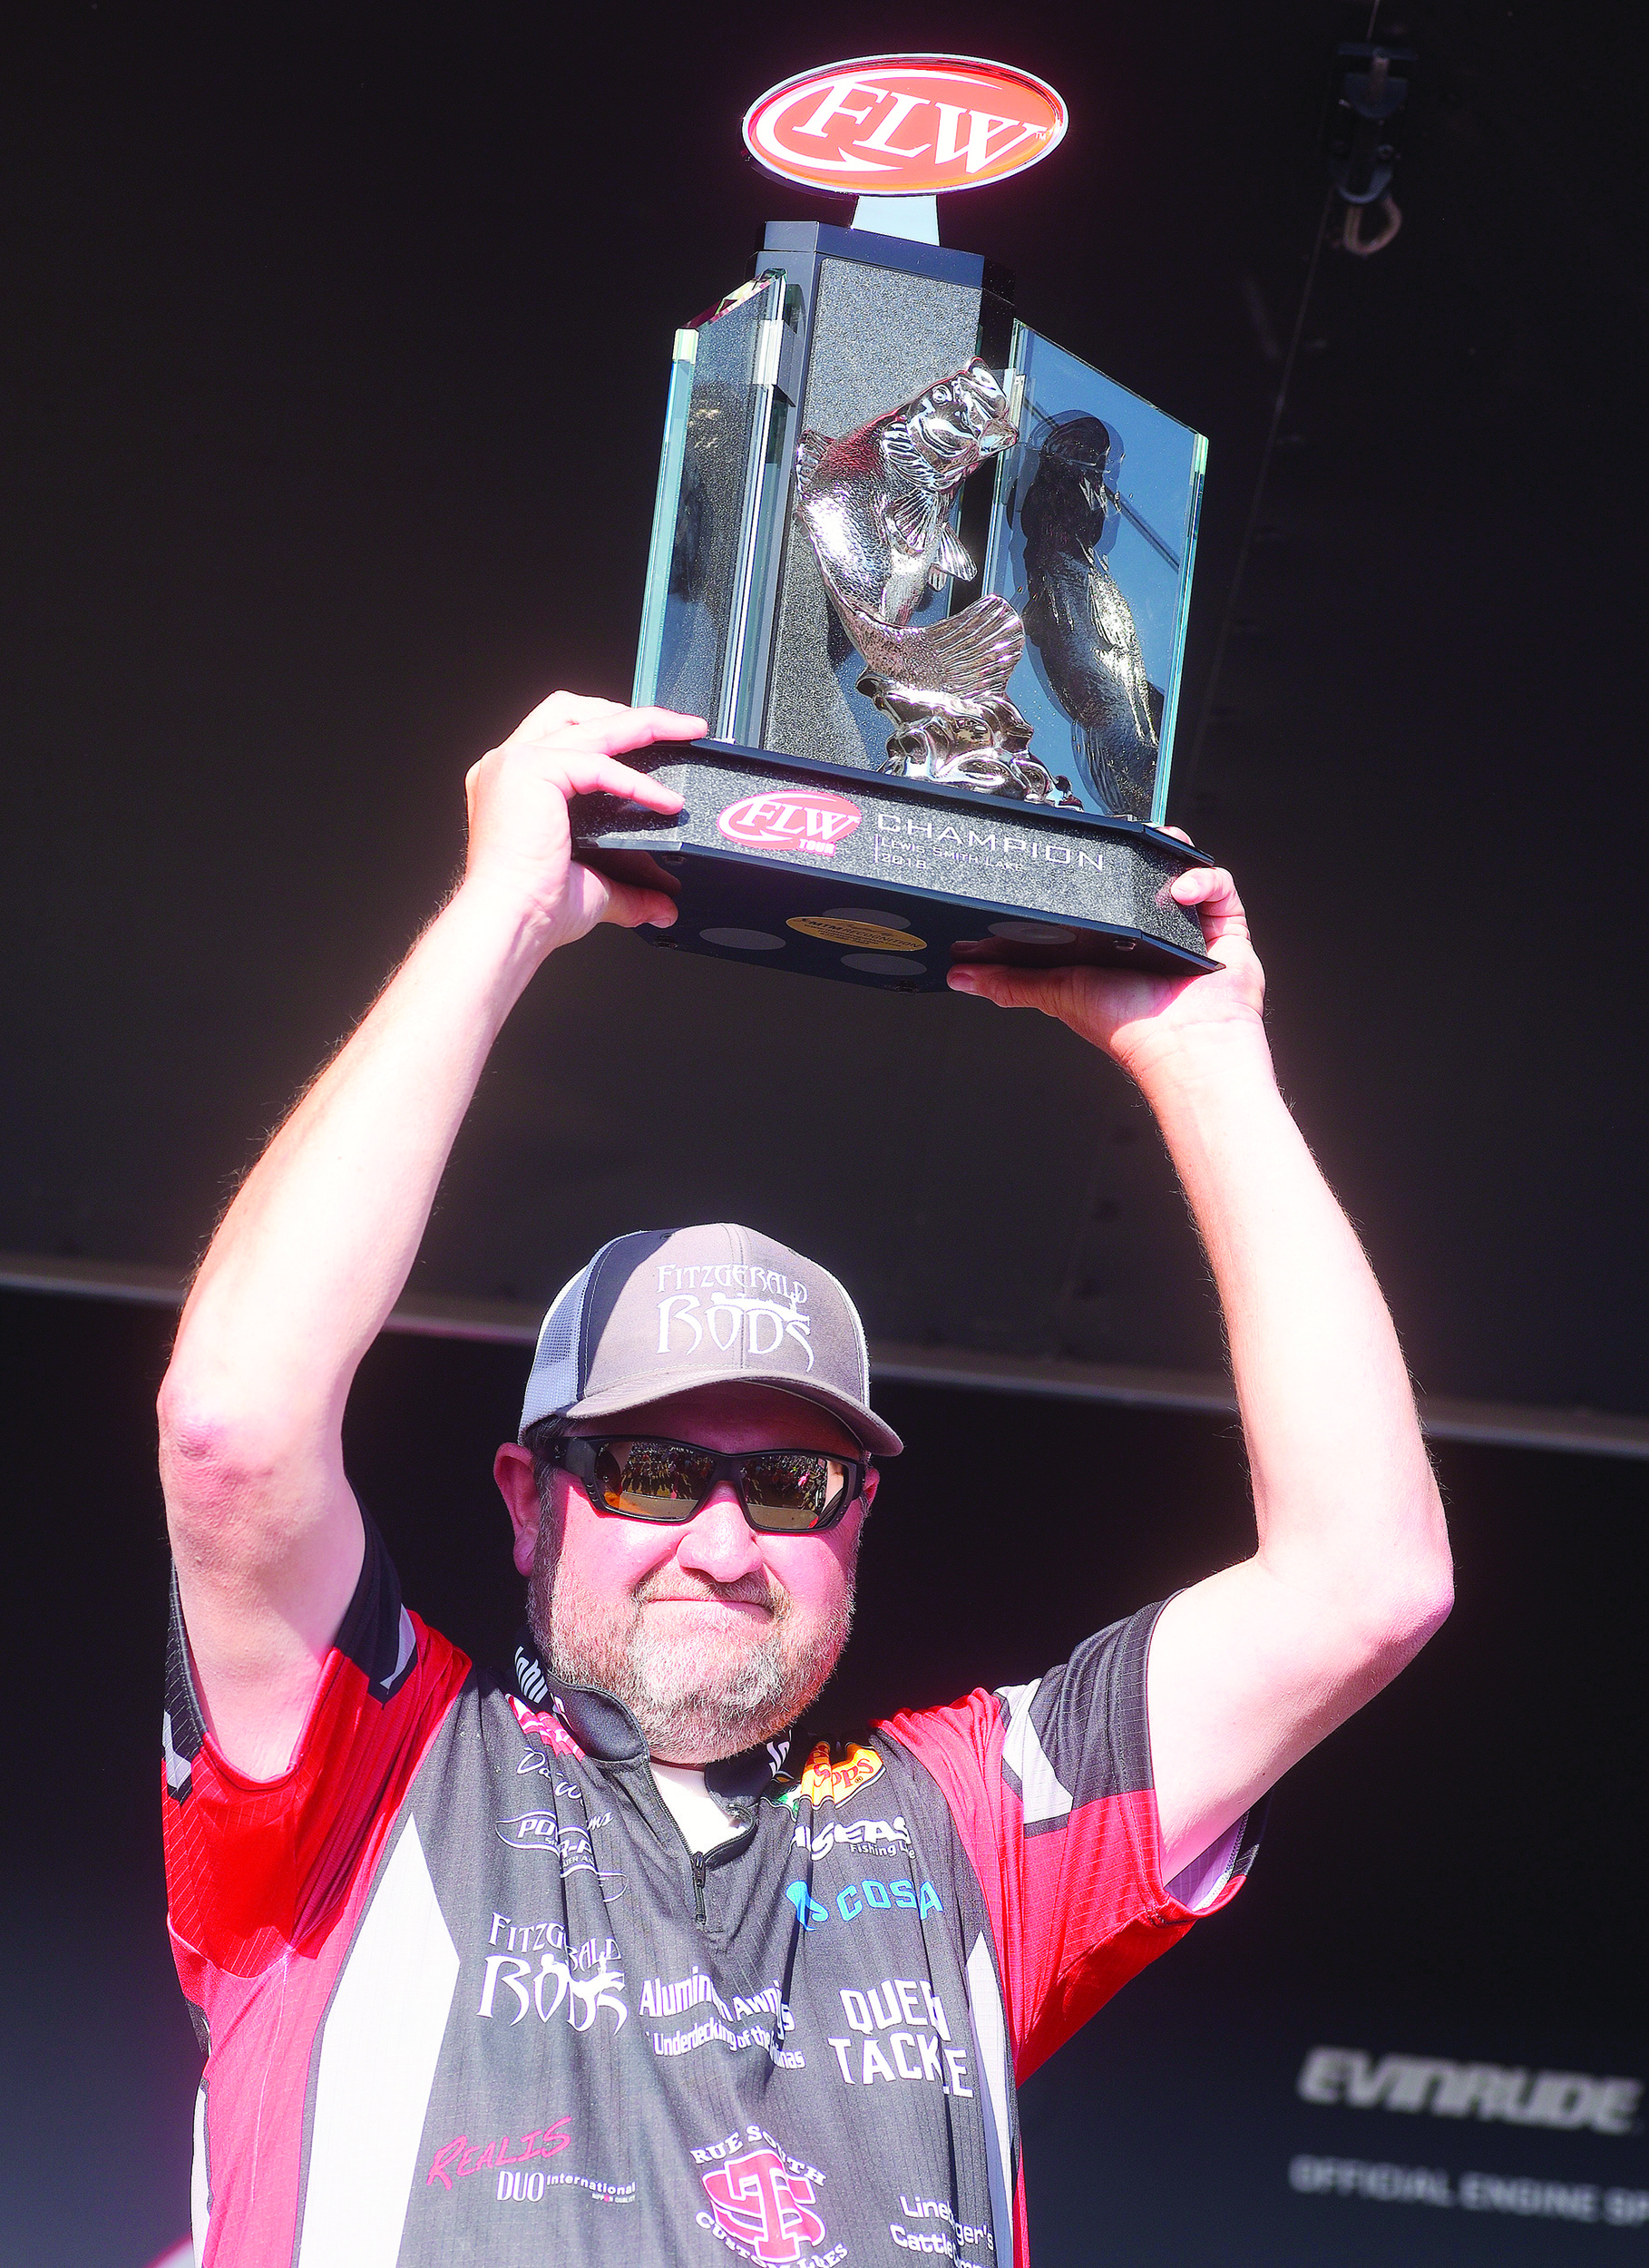 David Williams of Maiden, N.C.,  hoists the trophy after winning the FLW Tour event on Lewis Smith Lake. The win was the first on the FLW Tour for Williams, who finished the four-day tournament with 64 pounds, 9 ounces.